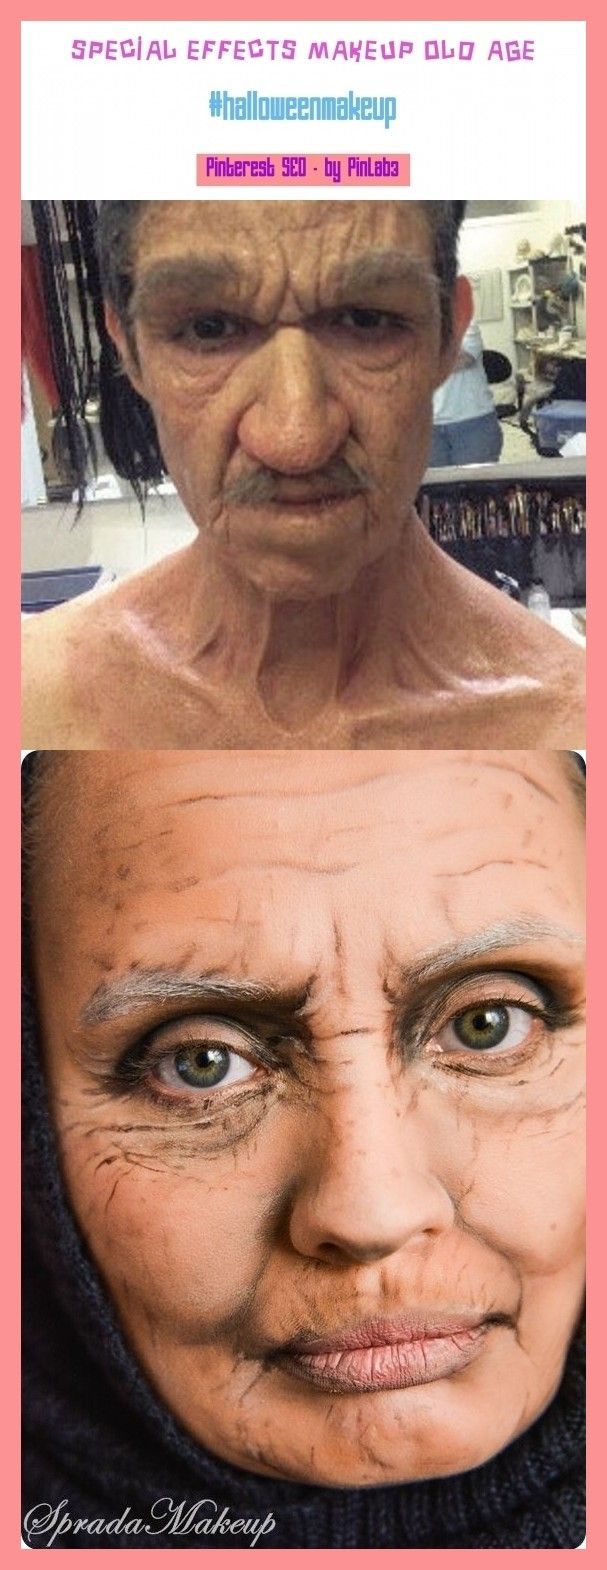 Special effects makeup old age special effects makeup